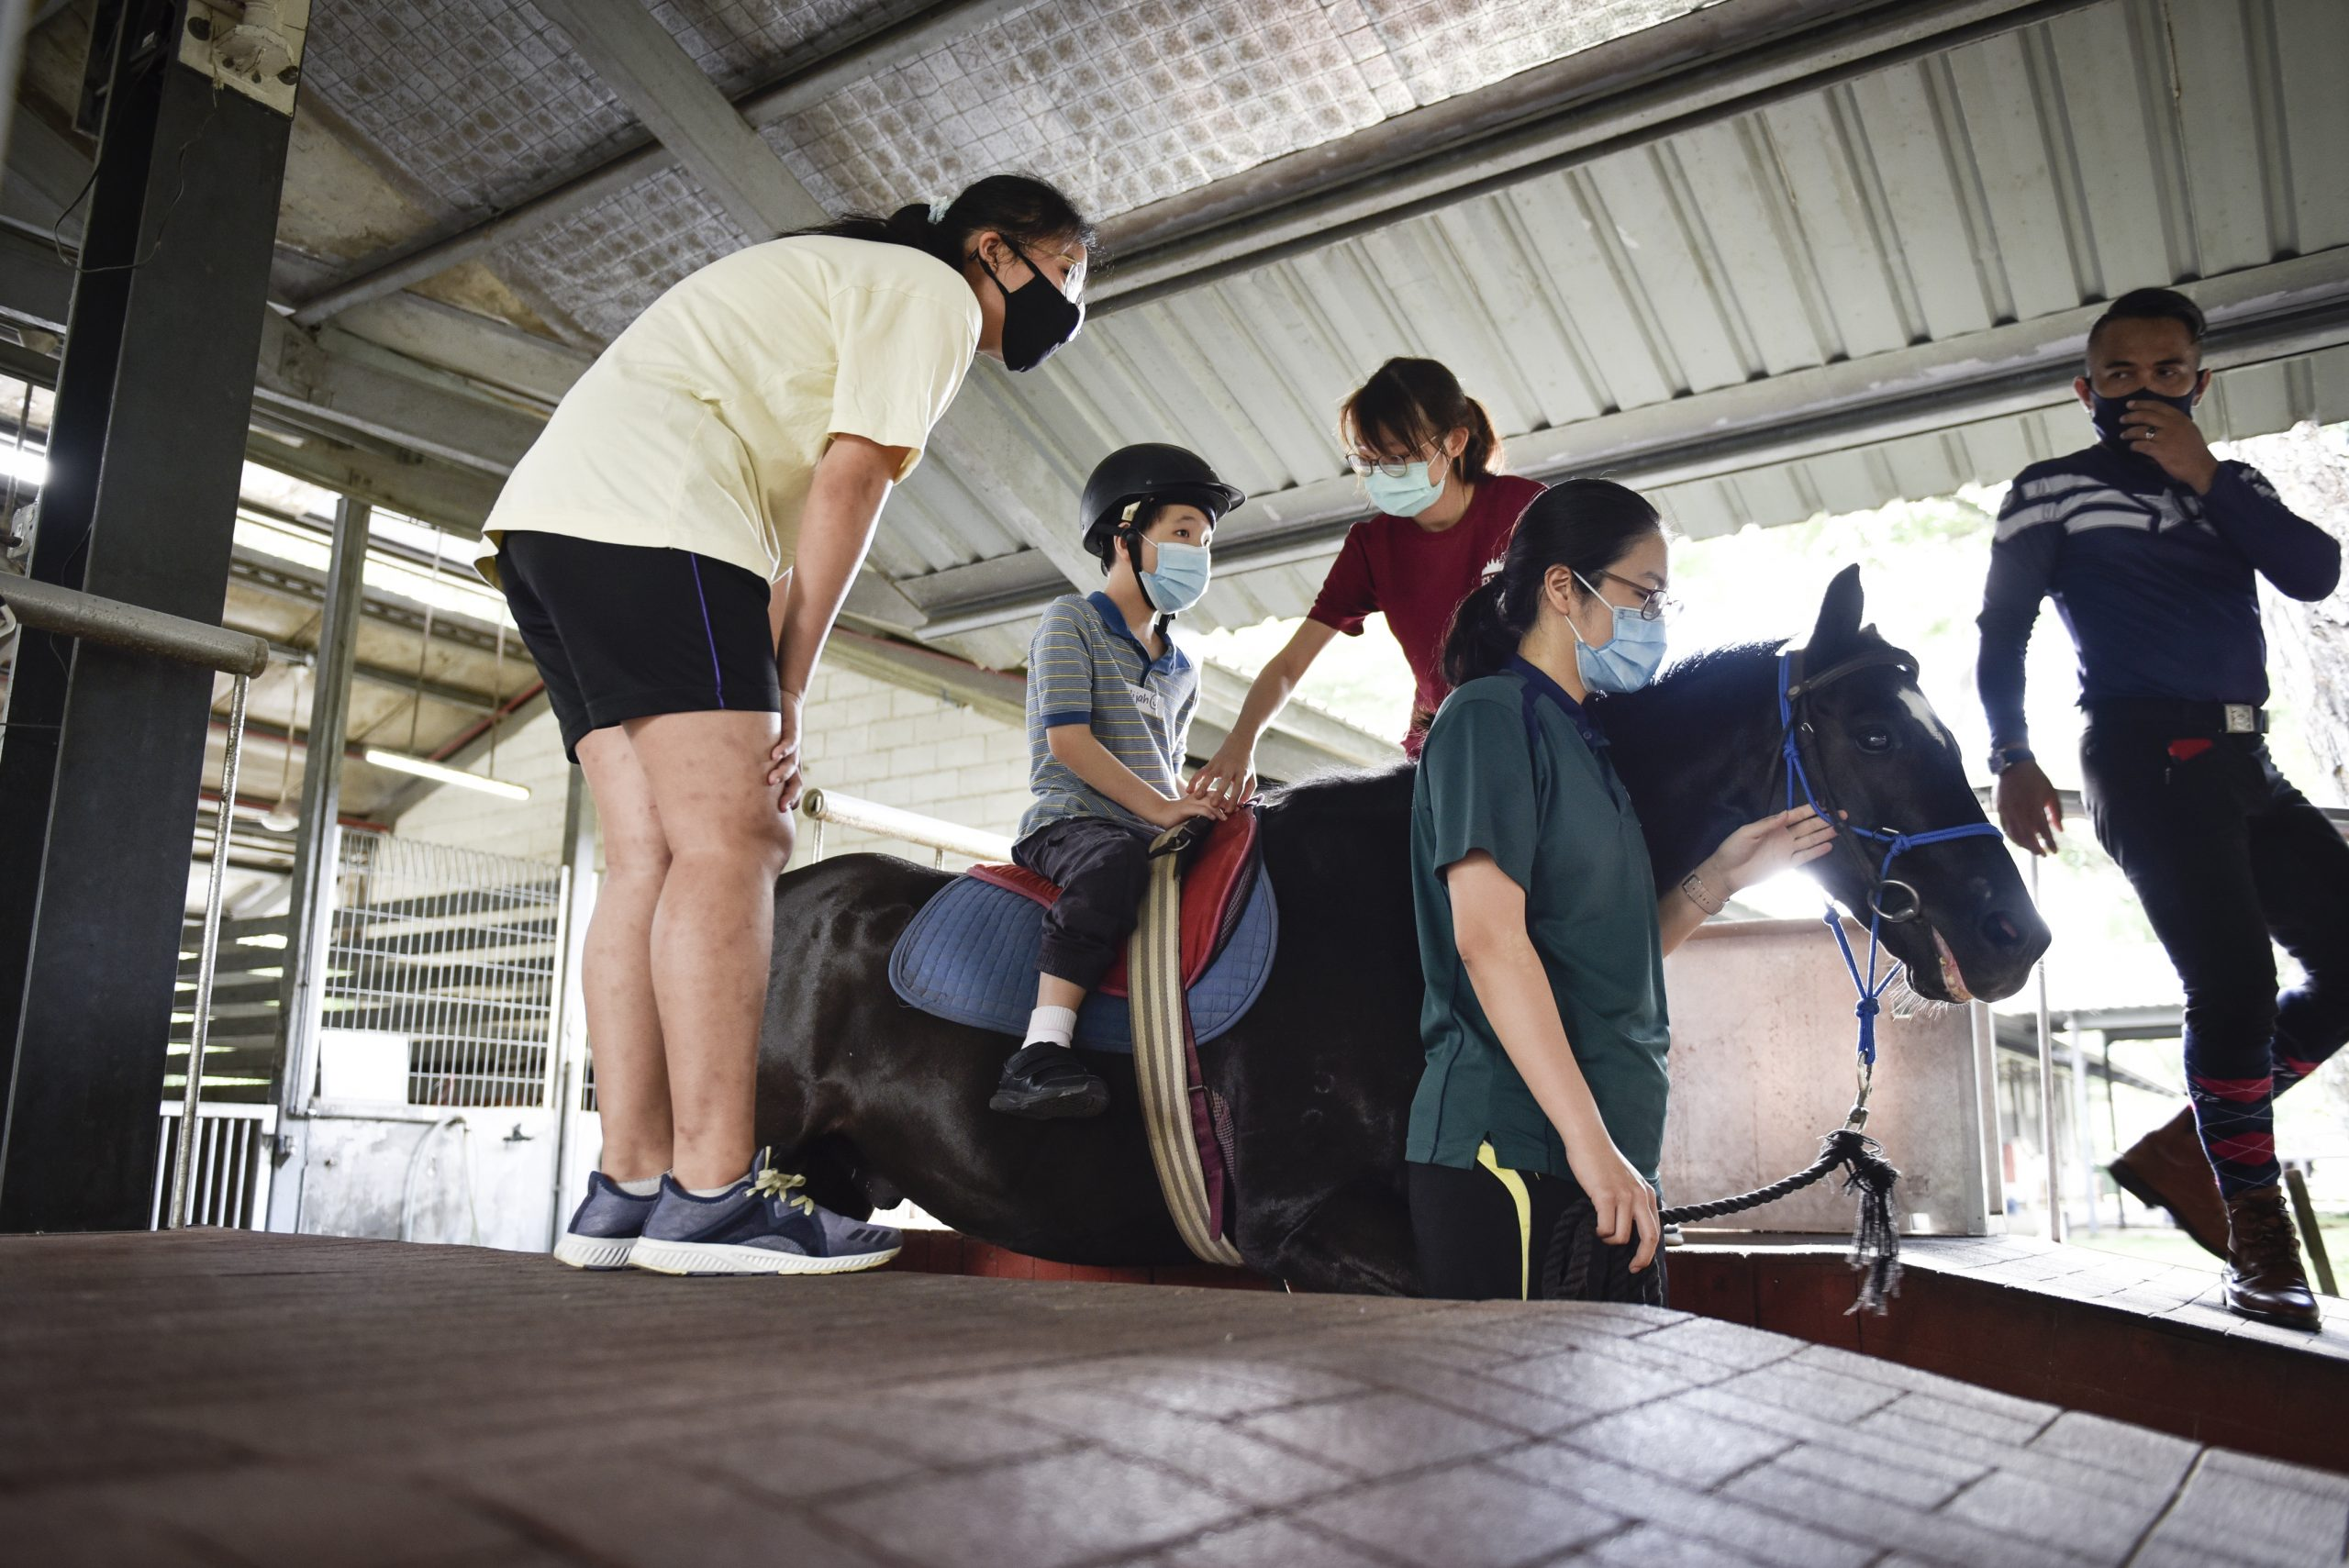 """Charlene Wong, 29, a volunteer with RDA Singapore (wearing green), is the leader who handles Elijah's horse, while interacting with Elijah during his session. """" I really like horses so being able to be at the stables while volunteering with children makes it a win-win situation, said Wong. """"My interest in volunteering has always been about empowering children with disabilities, so RDA is a great fit with the programme that it runs for the community."""""""